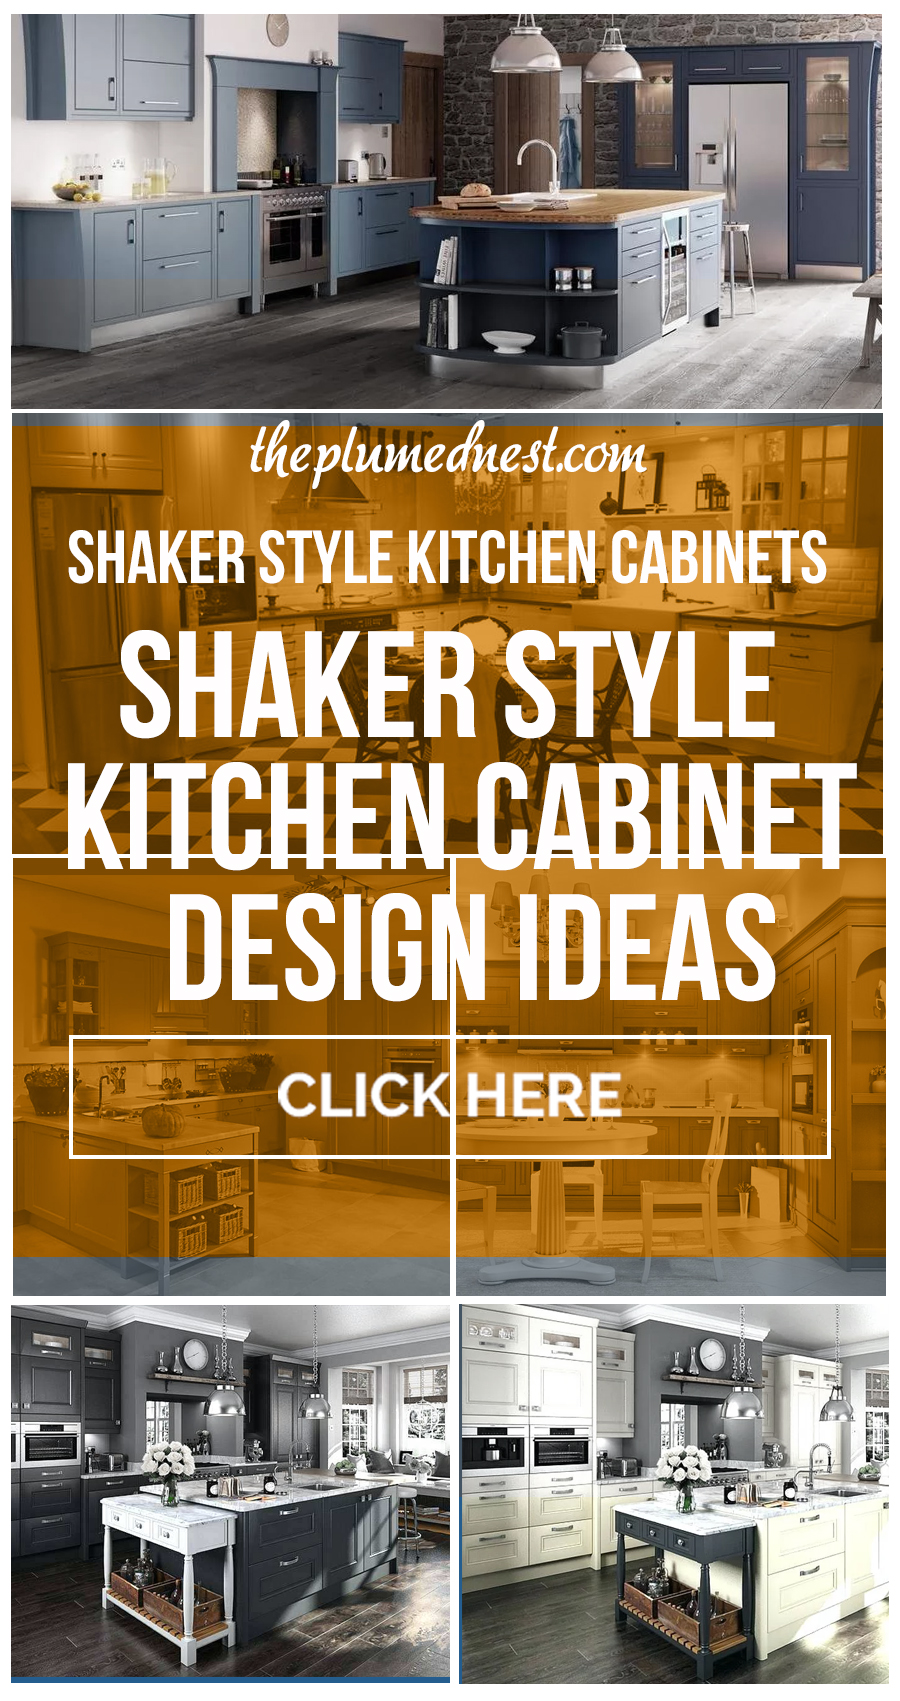 20+ Shaker Style Kitchen Cabinets Trends, Ideas & How To Design